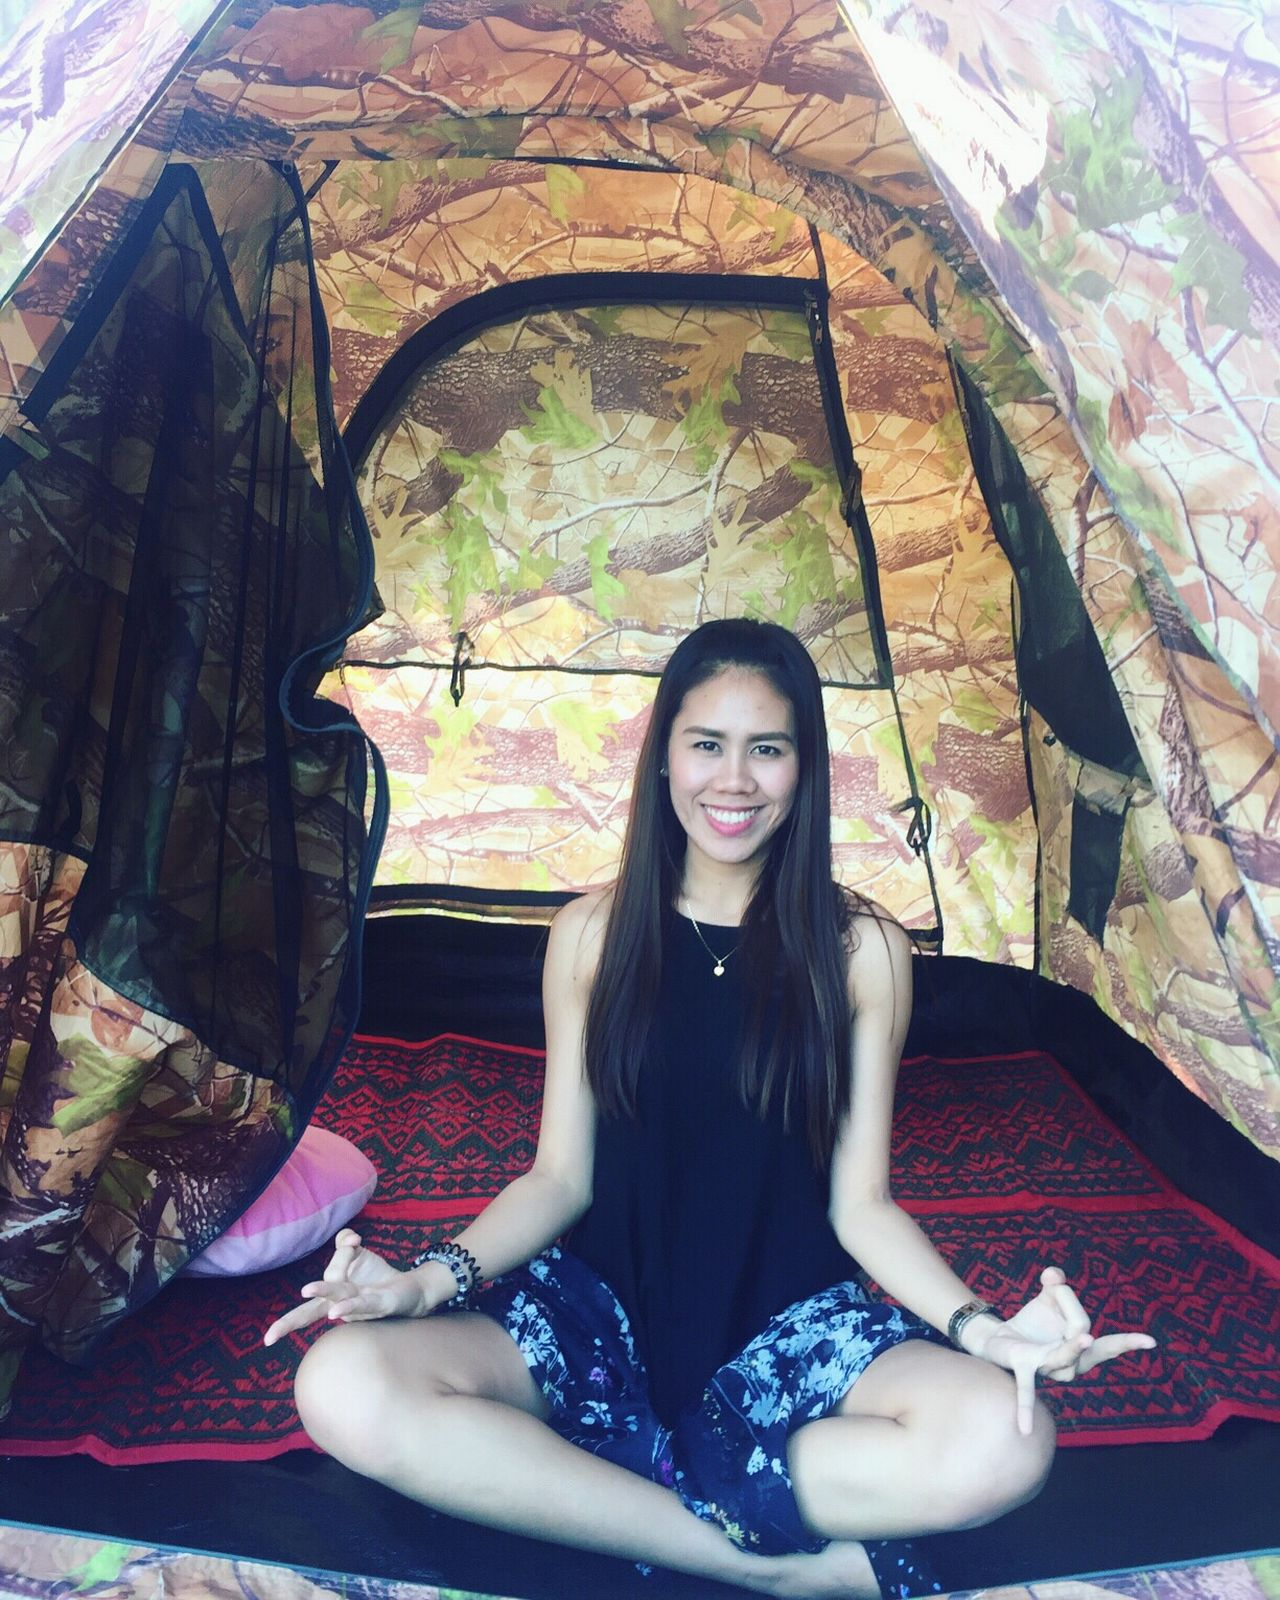 Camping Meditation Tents Happiness Mountains Filipina Long Hair Lifestyles Confidence  Young Women Smiling